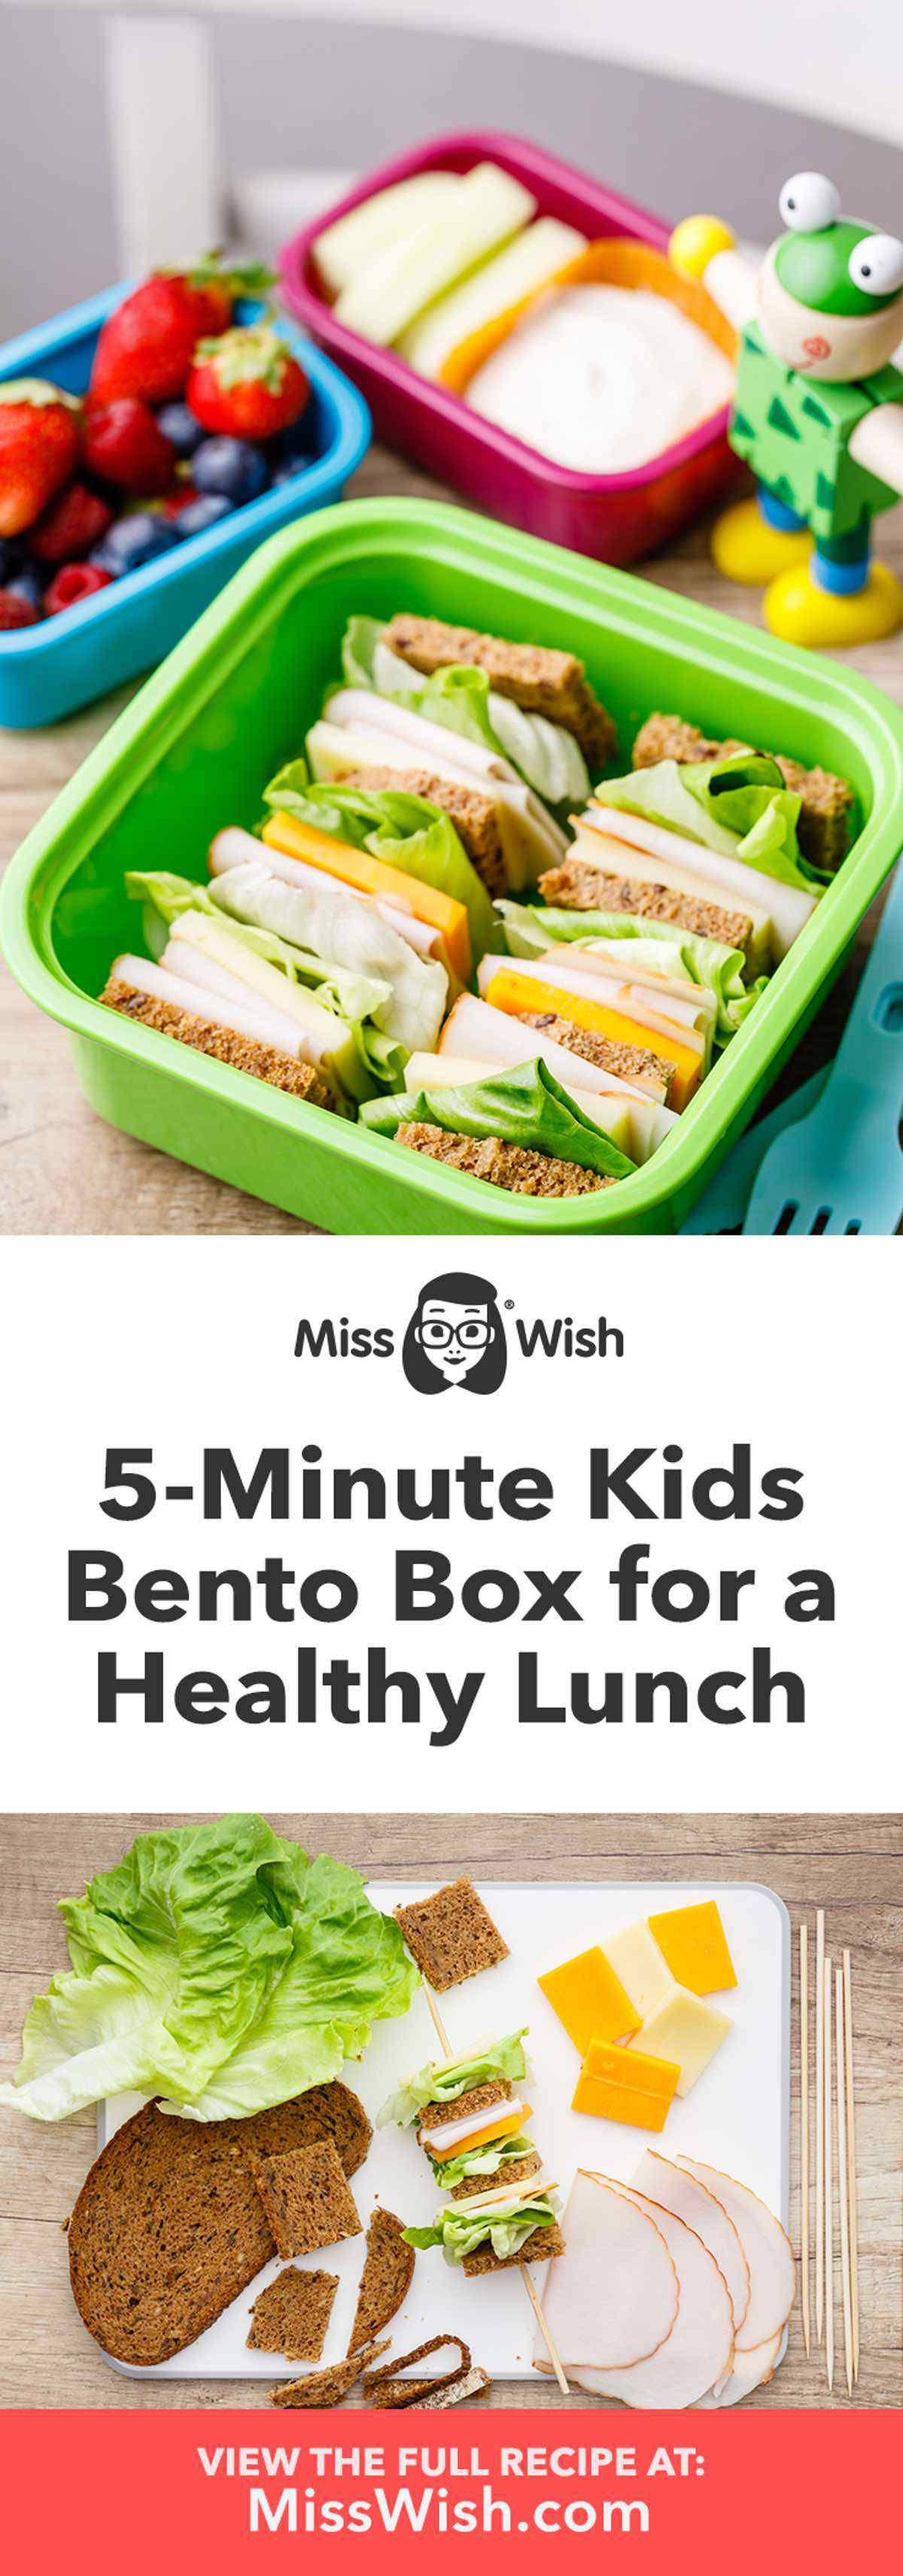 Looking for a quick and easy to prepare lunch for your kids? Try this idea for a 5-minute bento box that gives them all the tasty nutrition they need, without the hassle.